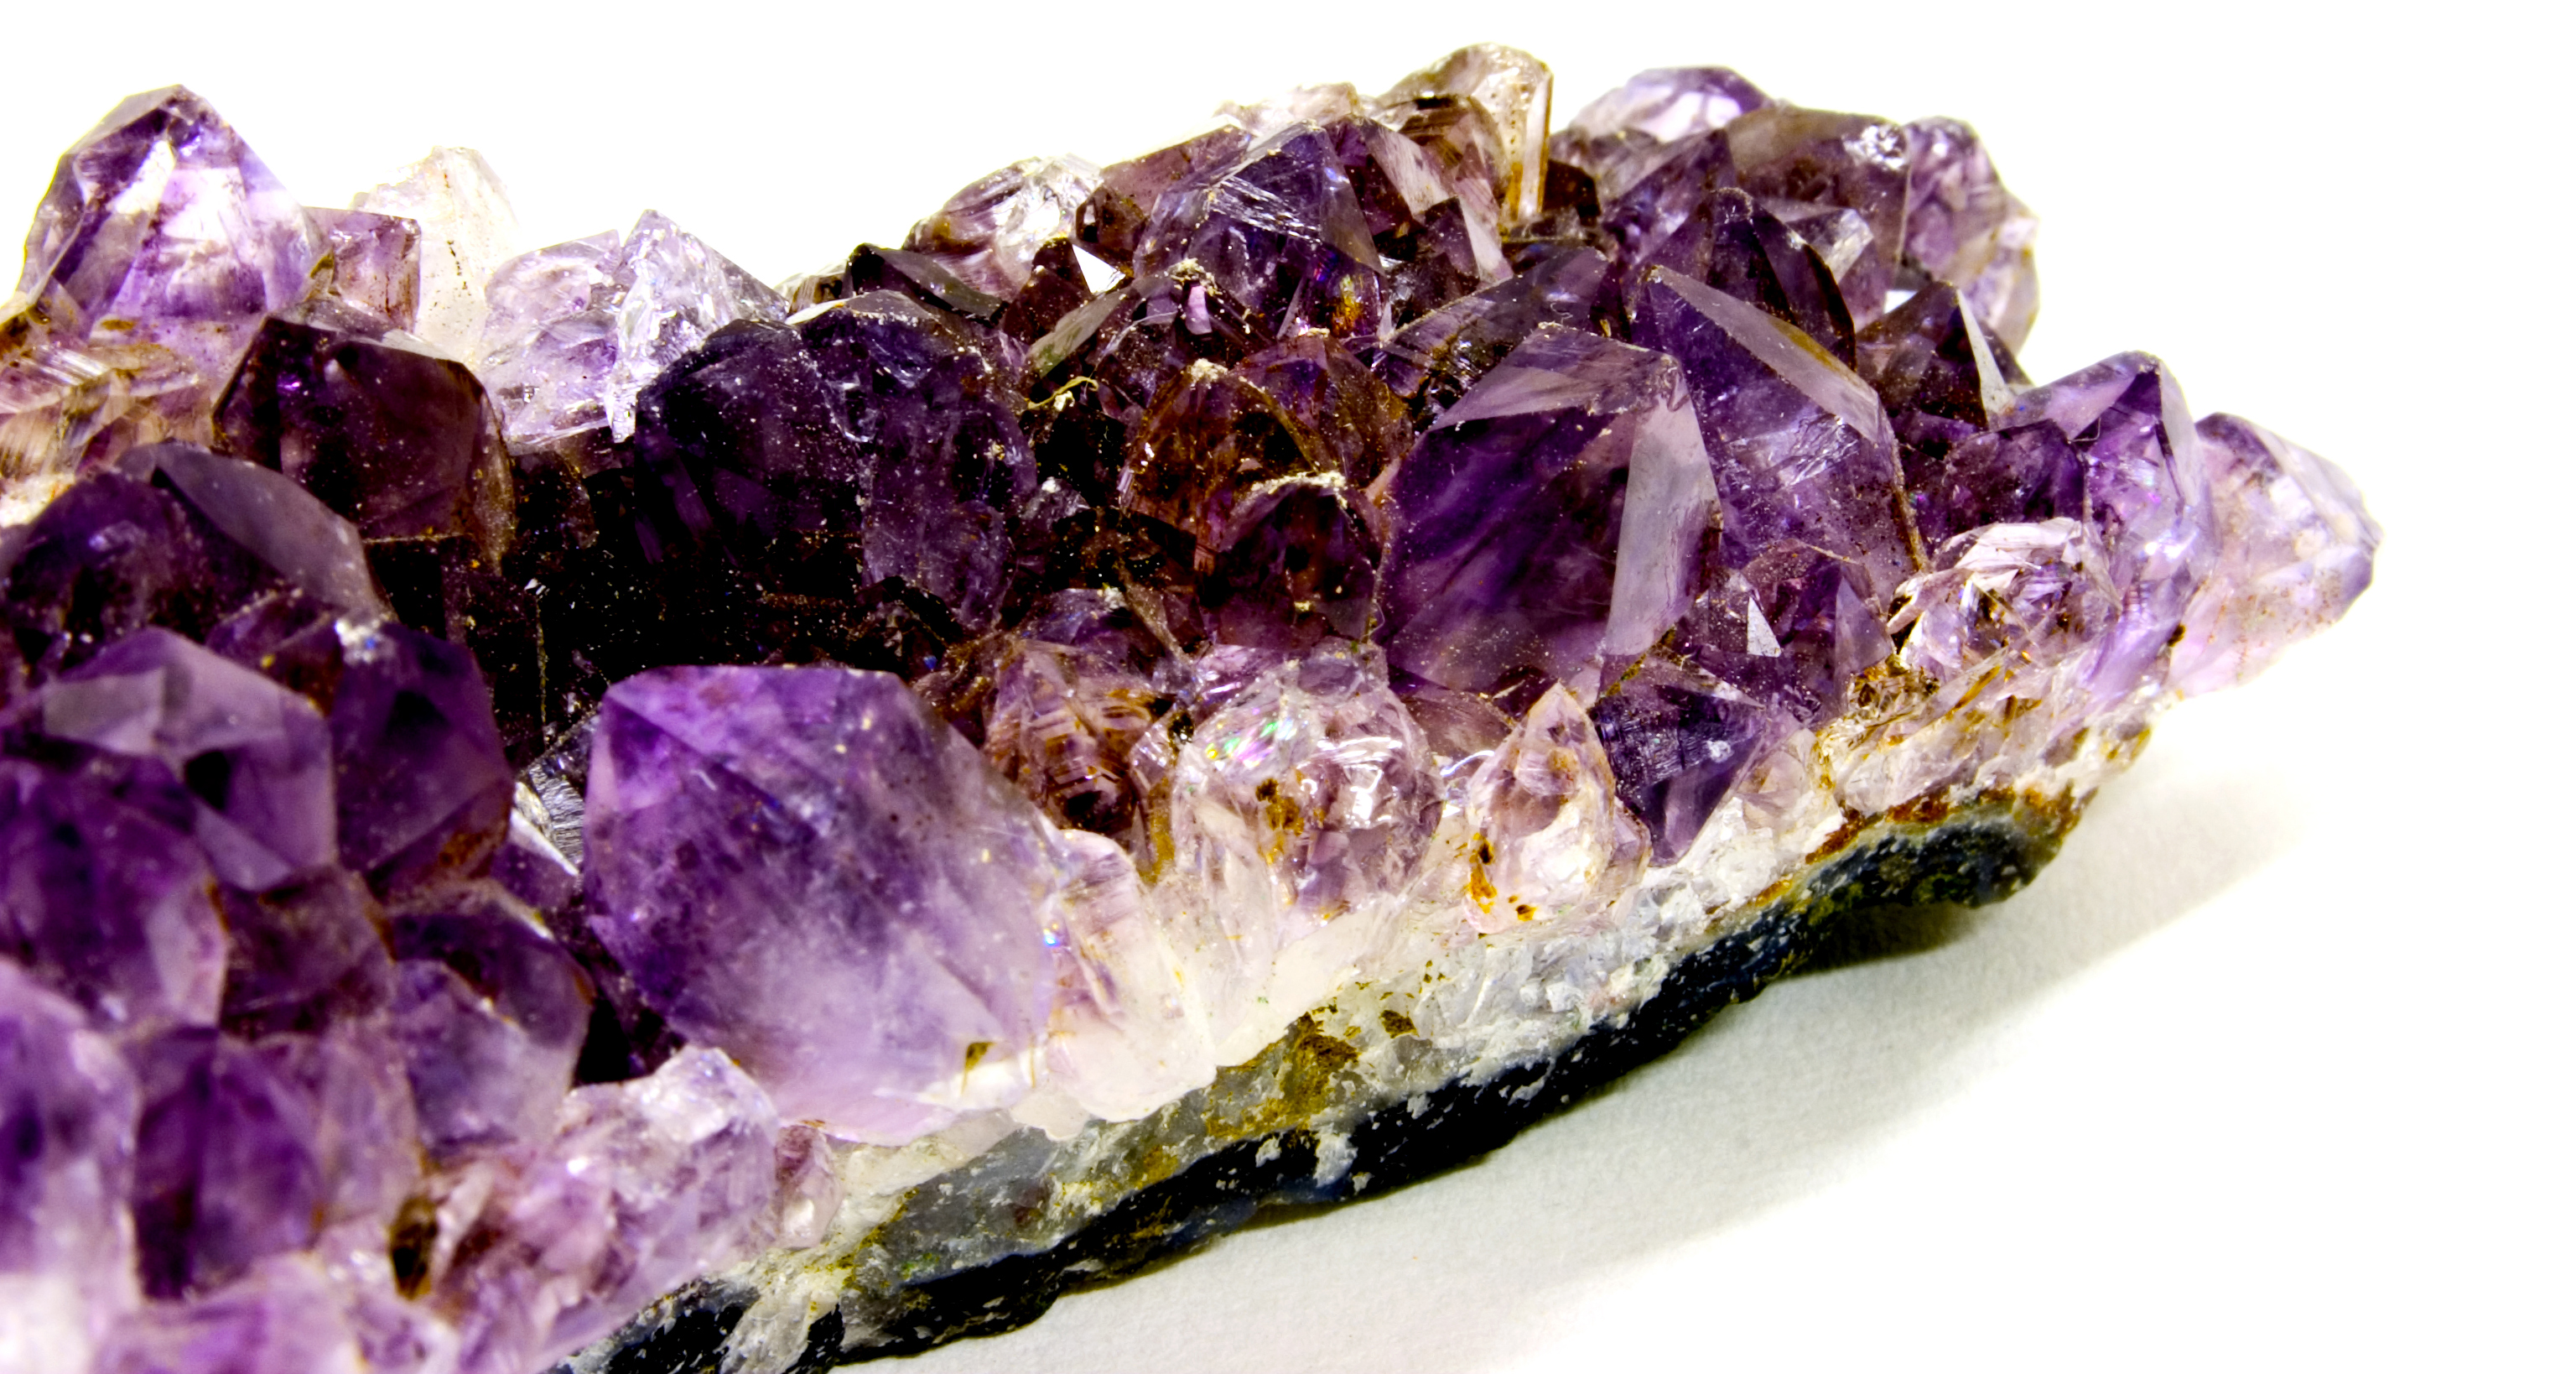 gem purple gemstone amethyst color american society birthstone februarybirthstone february page